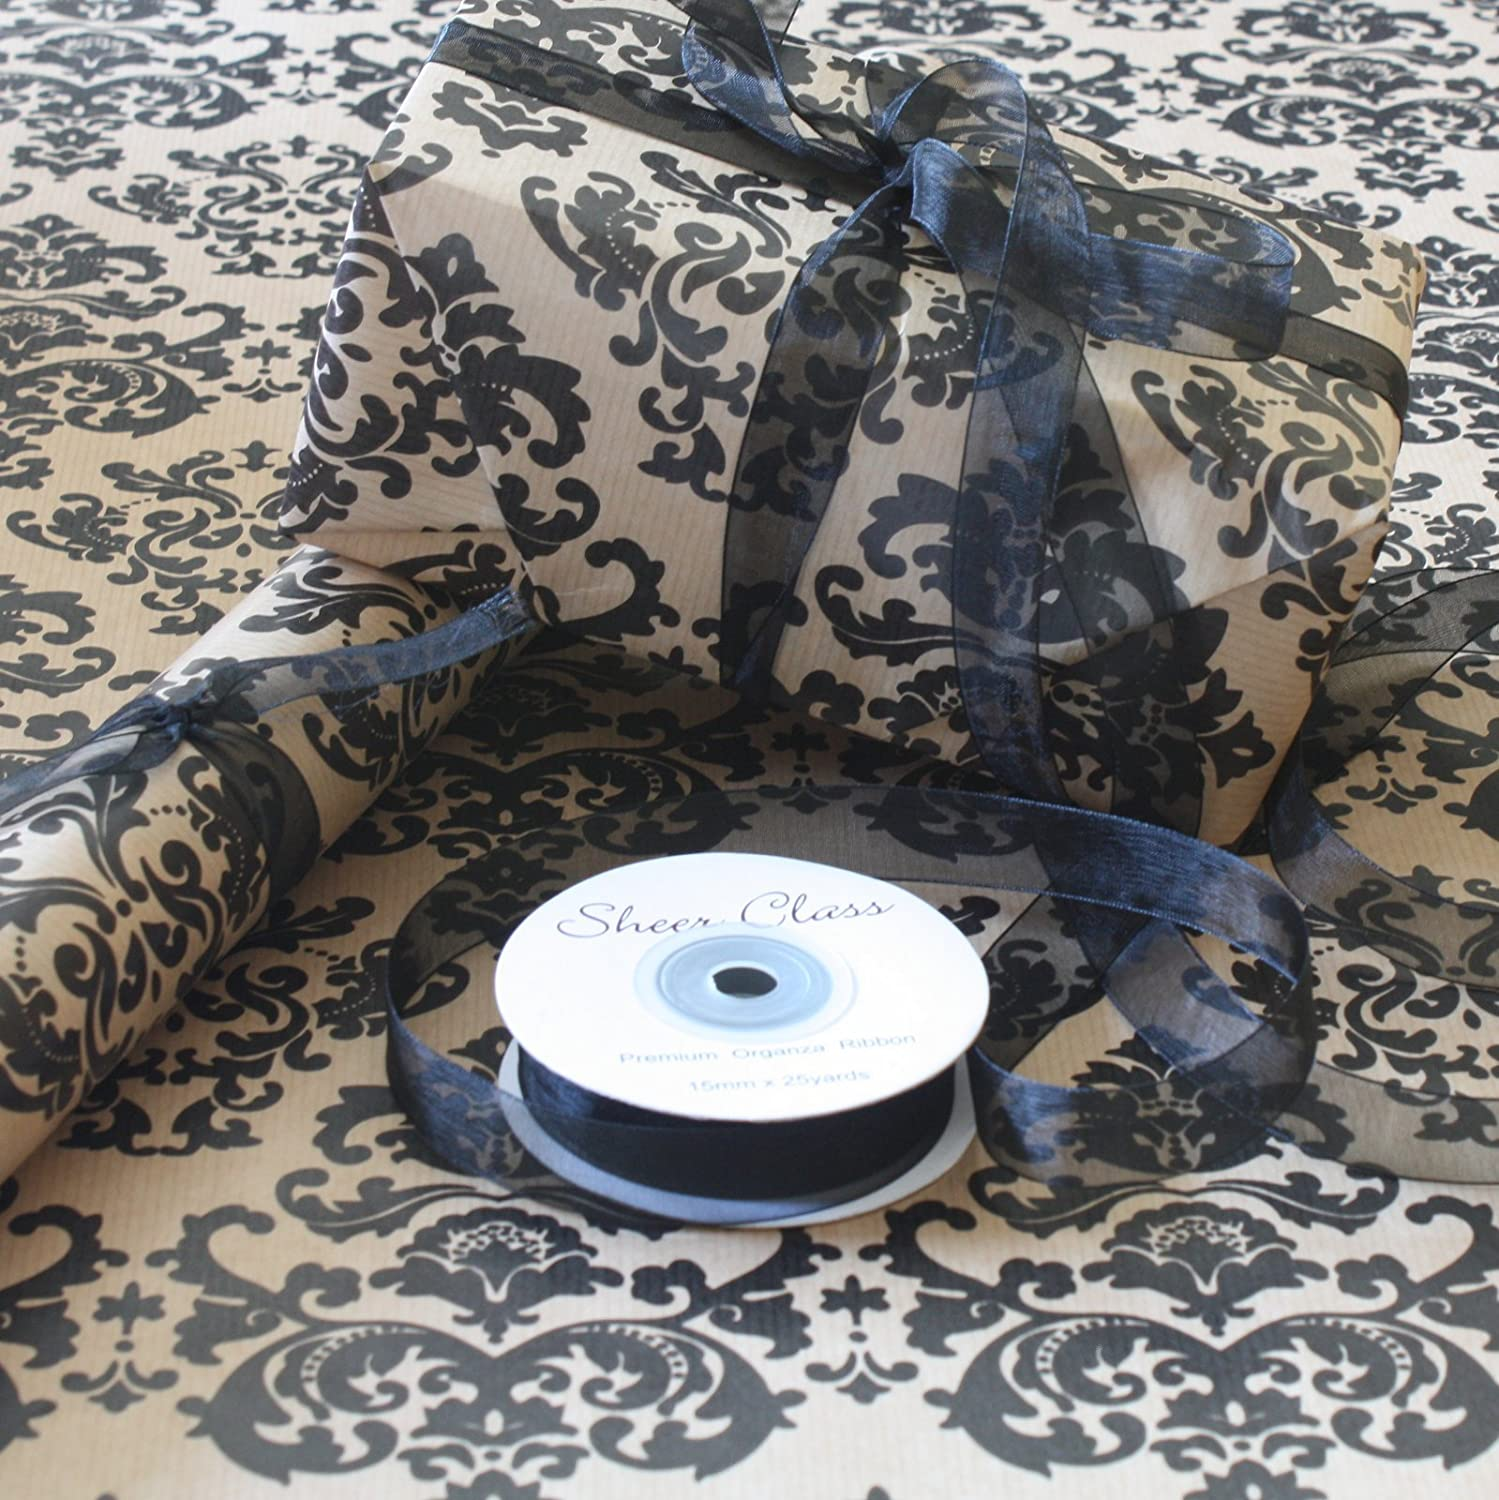 Natural Kraft Black Baroque Patterned Gift Wrapping Paper 10 metre roll with Black Organza Ribbon Wrappings and Bows